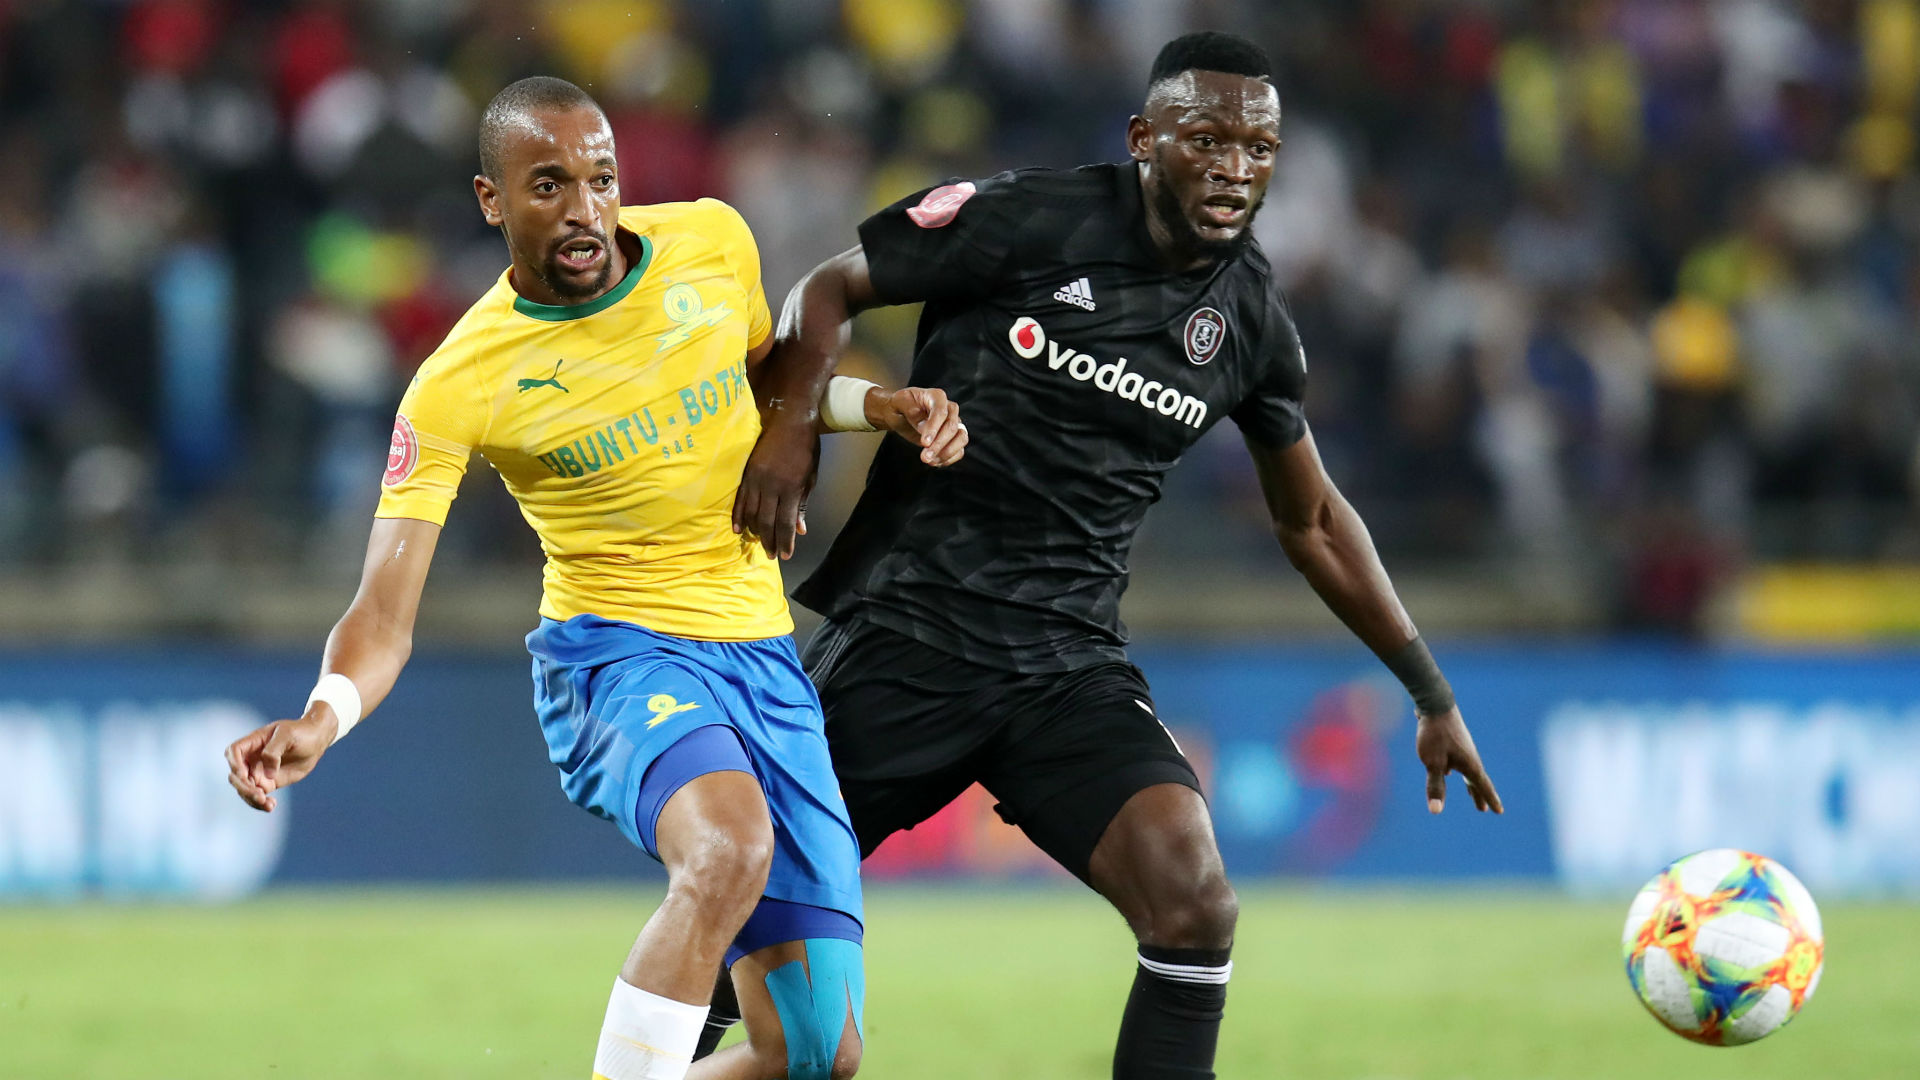 Orlando Pirates vs Mamelodi Sundowns: The last five matches